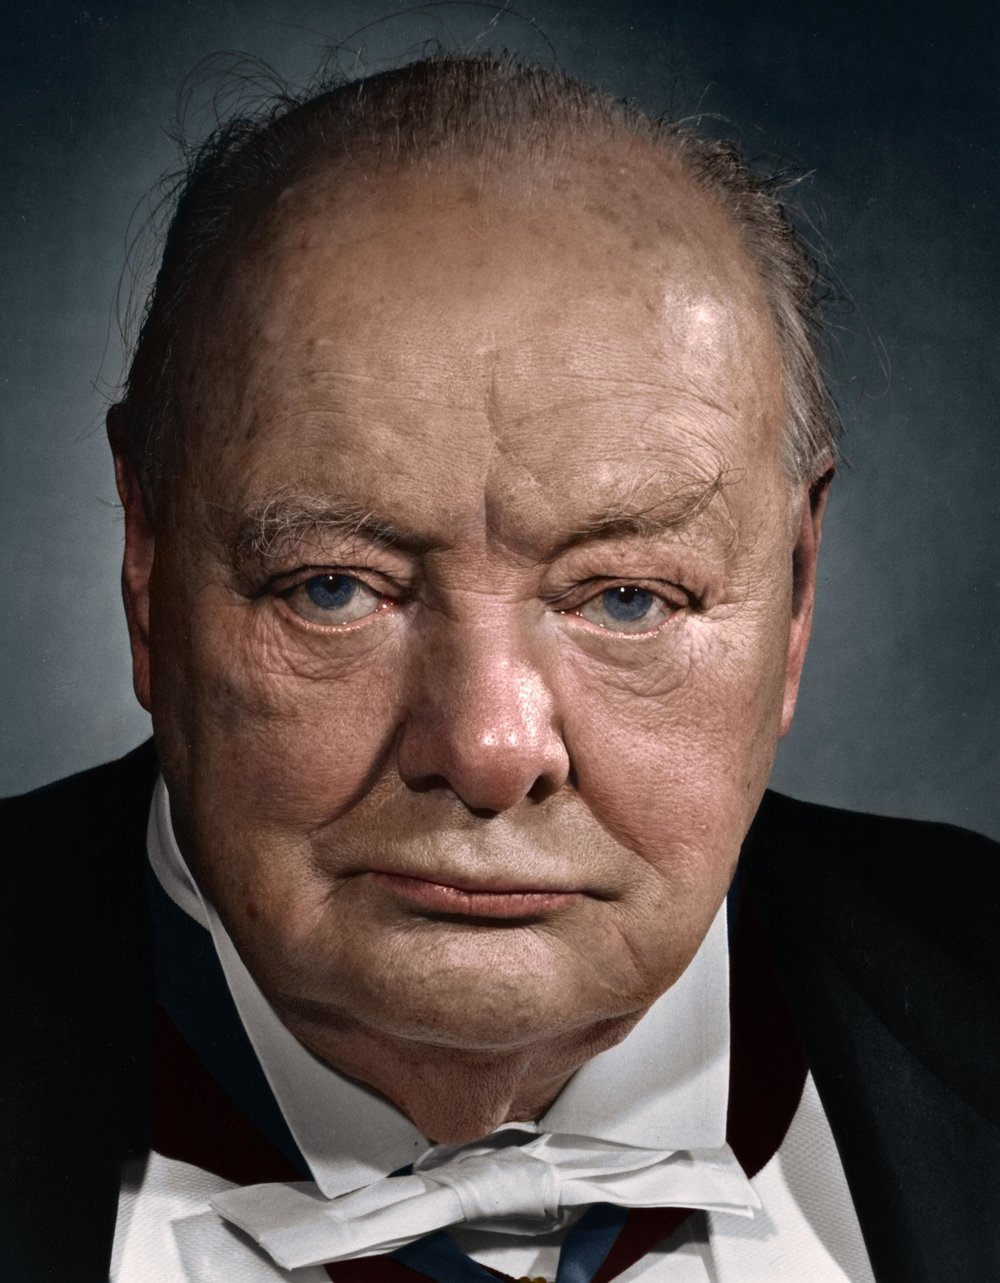 Winston Churchill at the age of 82, 1956